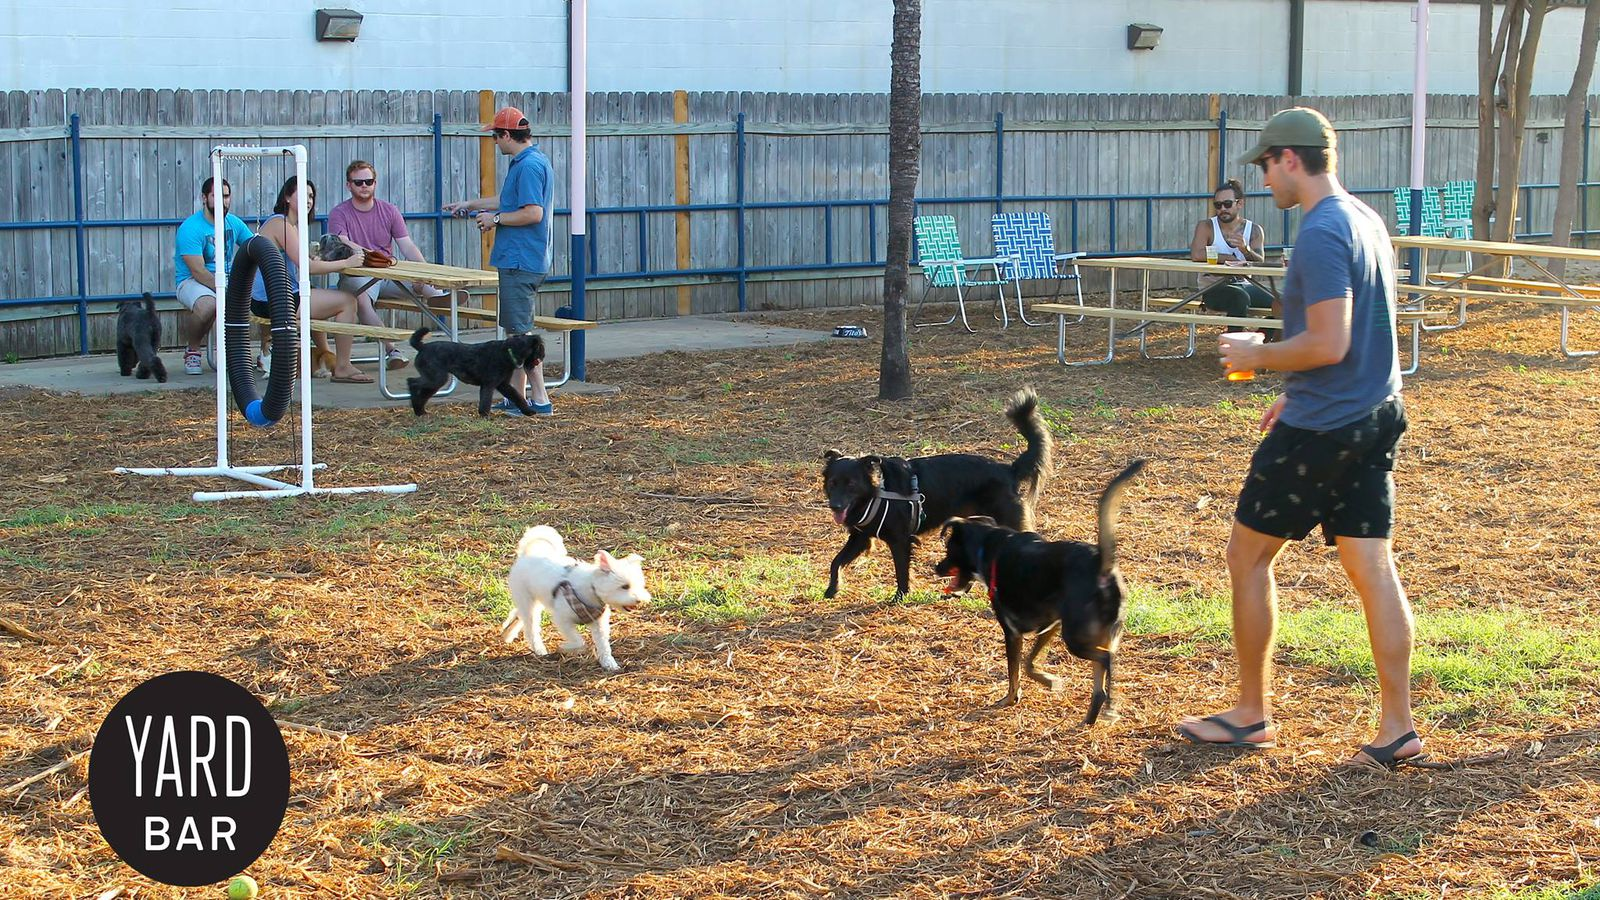 Dog Friendly Parks In New Orleans